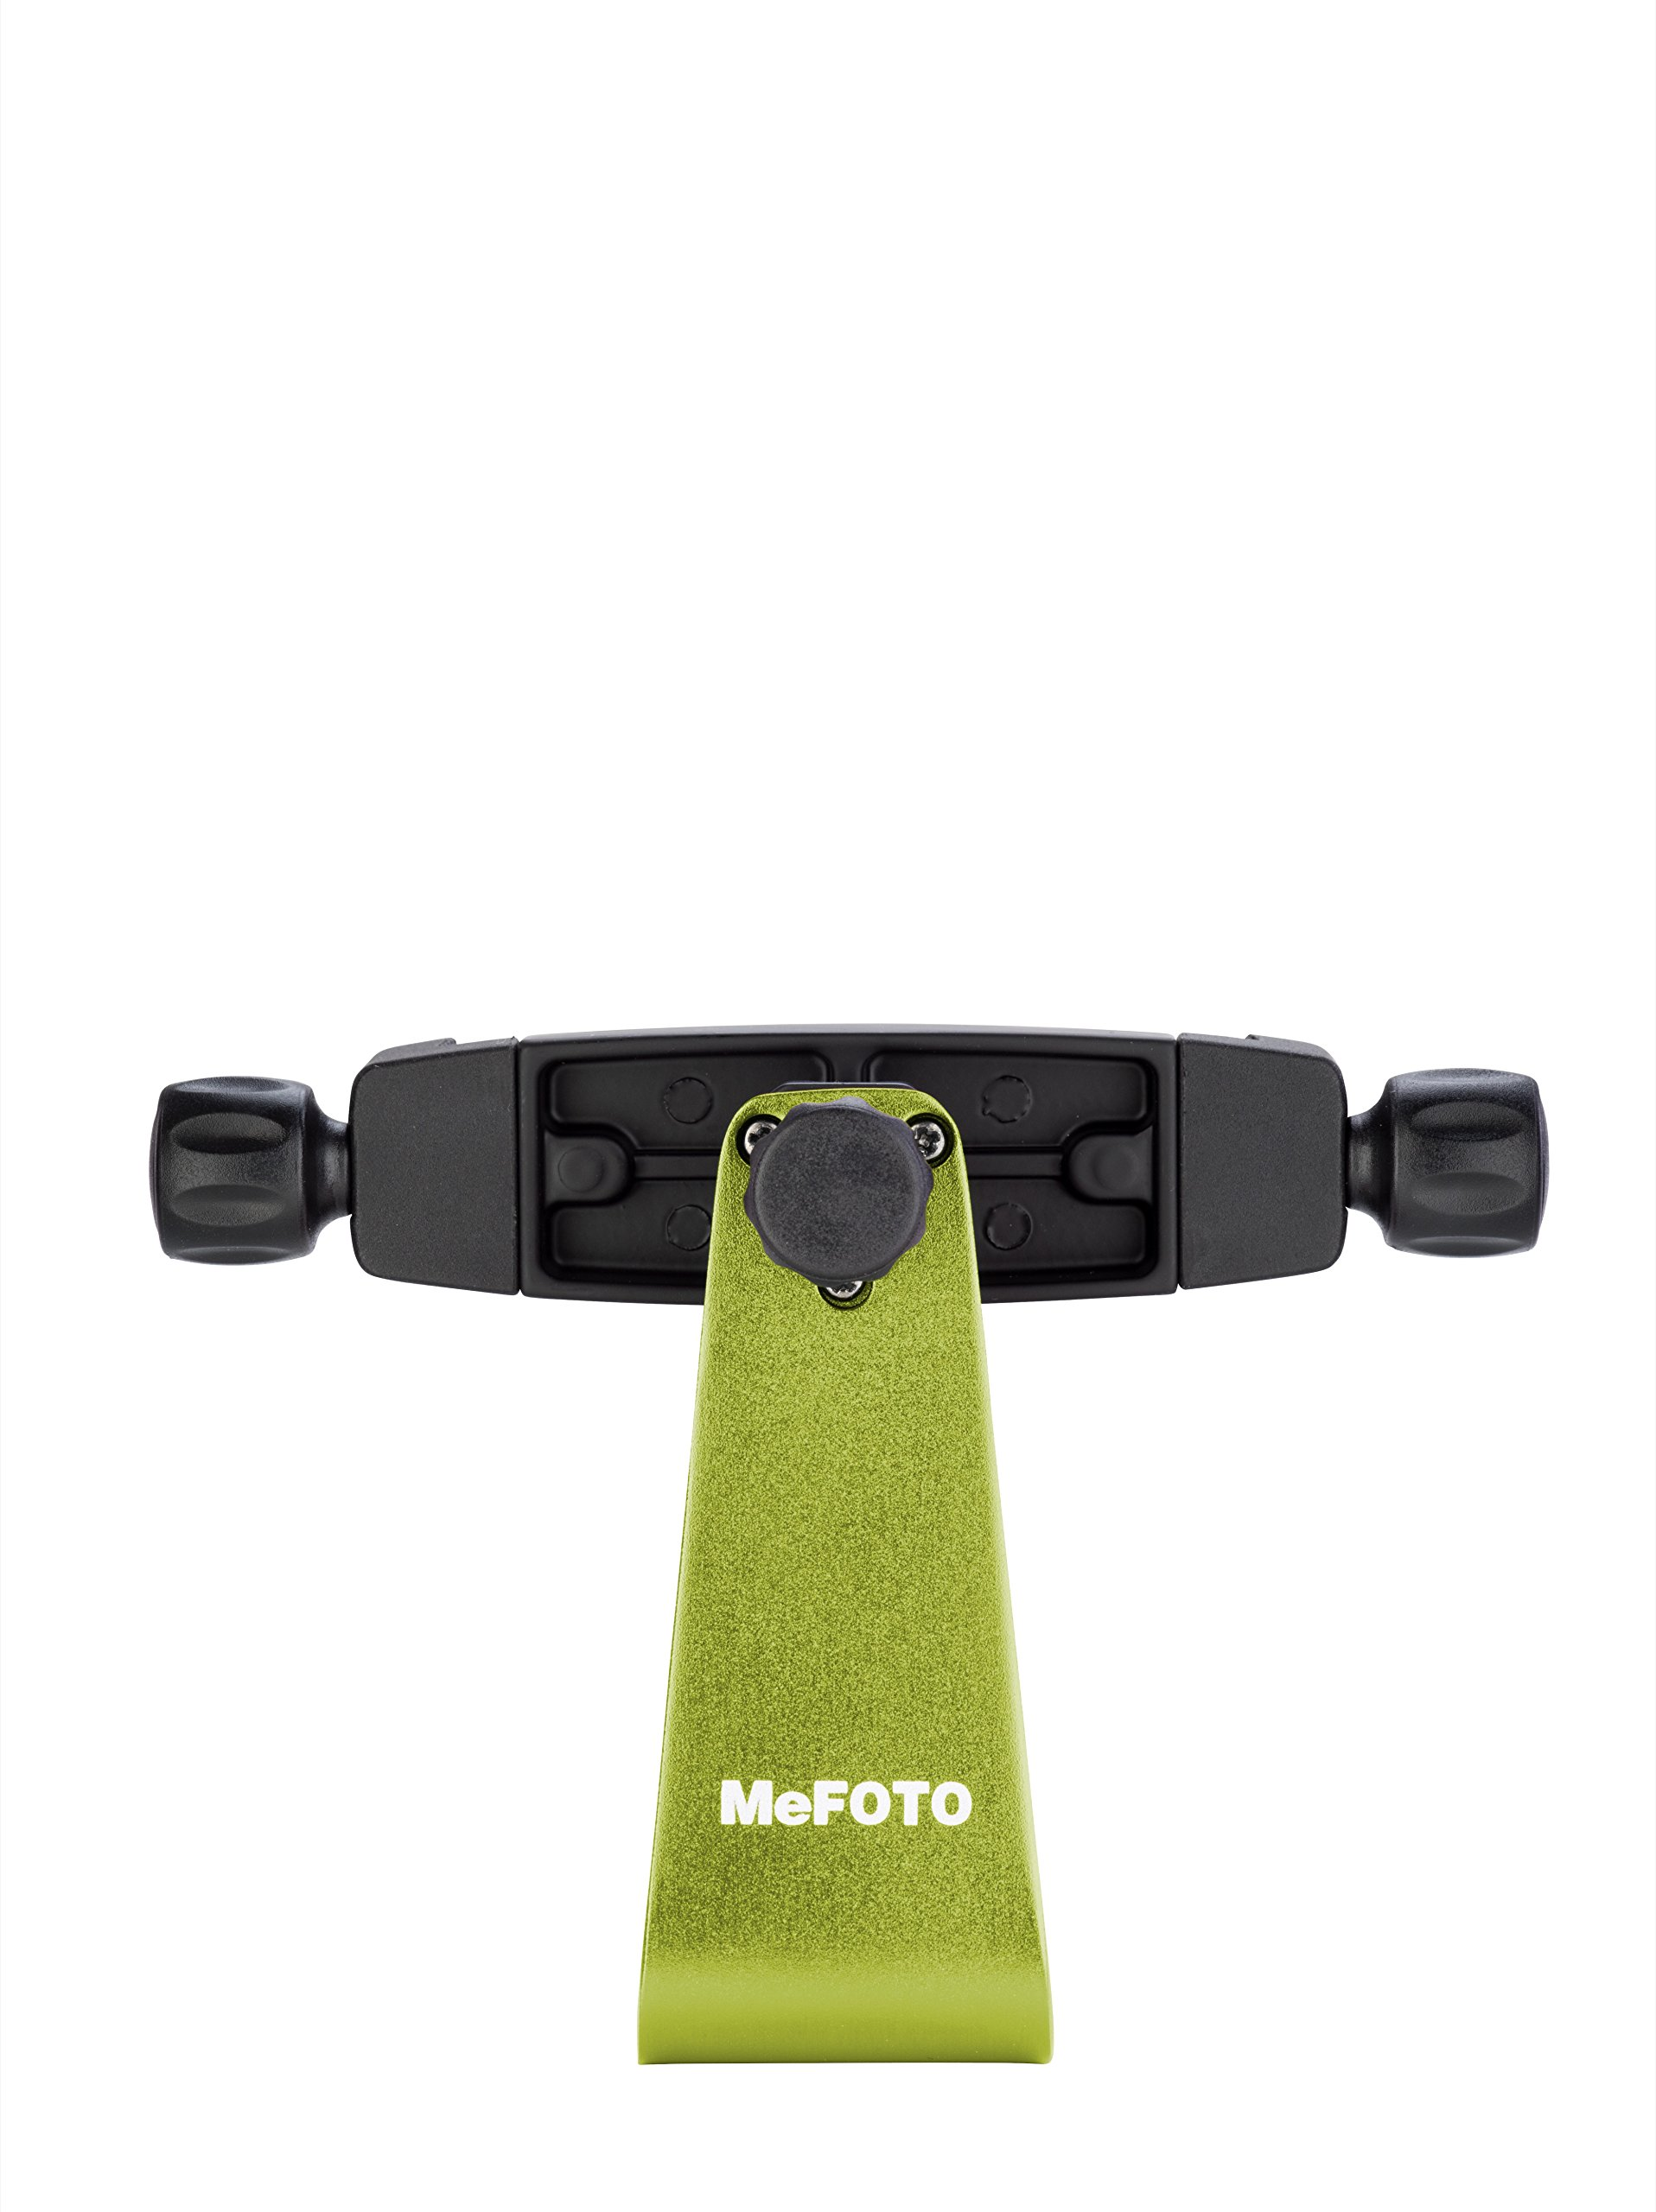 MeFOTO SideKick360 Plus Smartphone Tripod Mount-Stand-Holder, Works with iPhone, Google, HTC, Nexus, Lumia, Galaxy, Xperia and all other Smartphones (see details below) - Green (MPH200G) by Mefoto